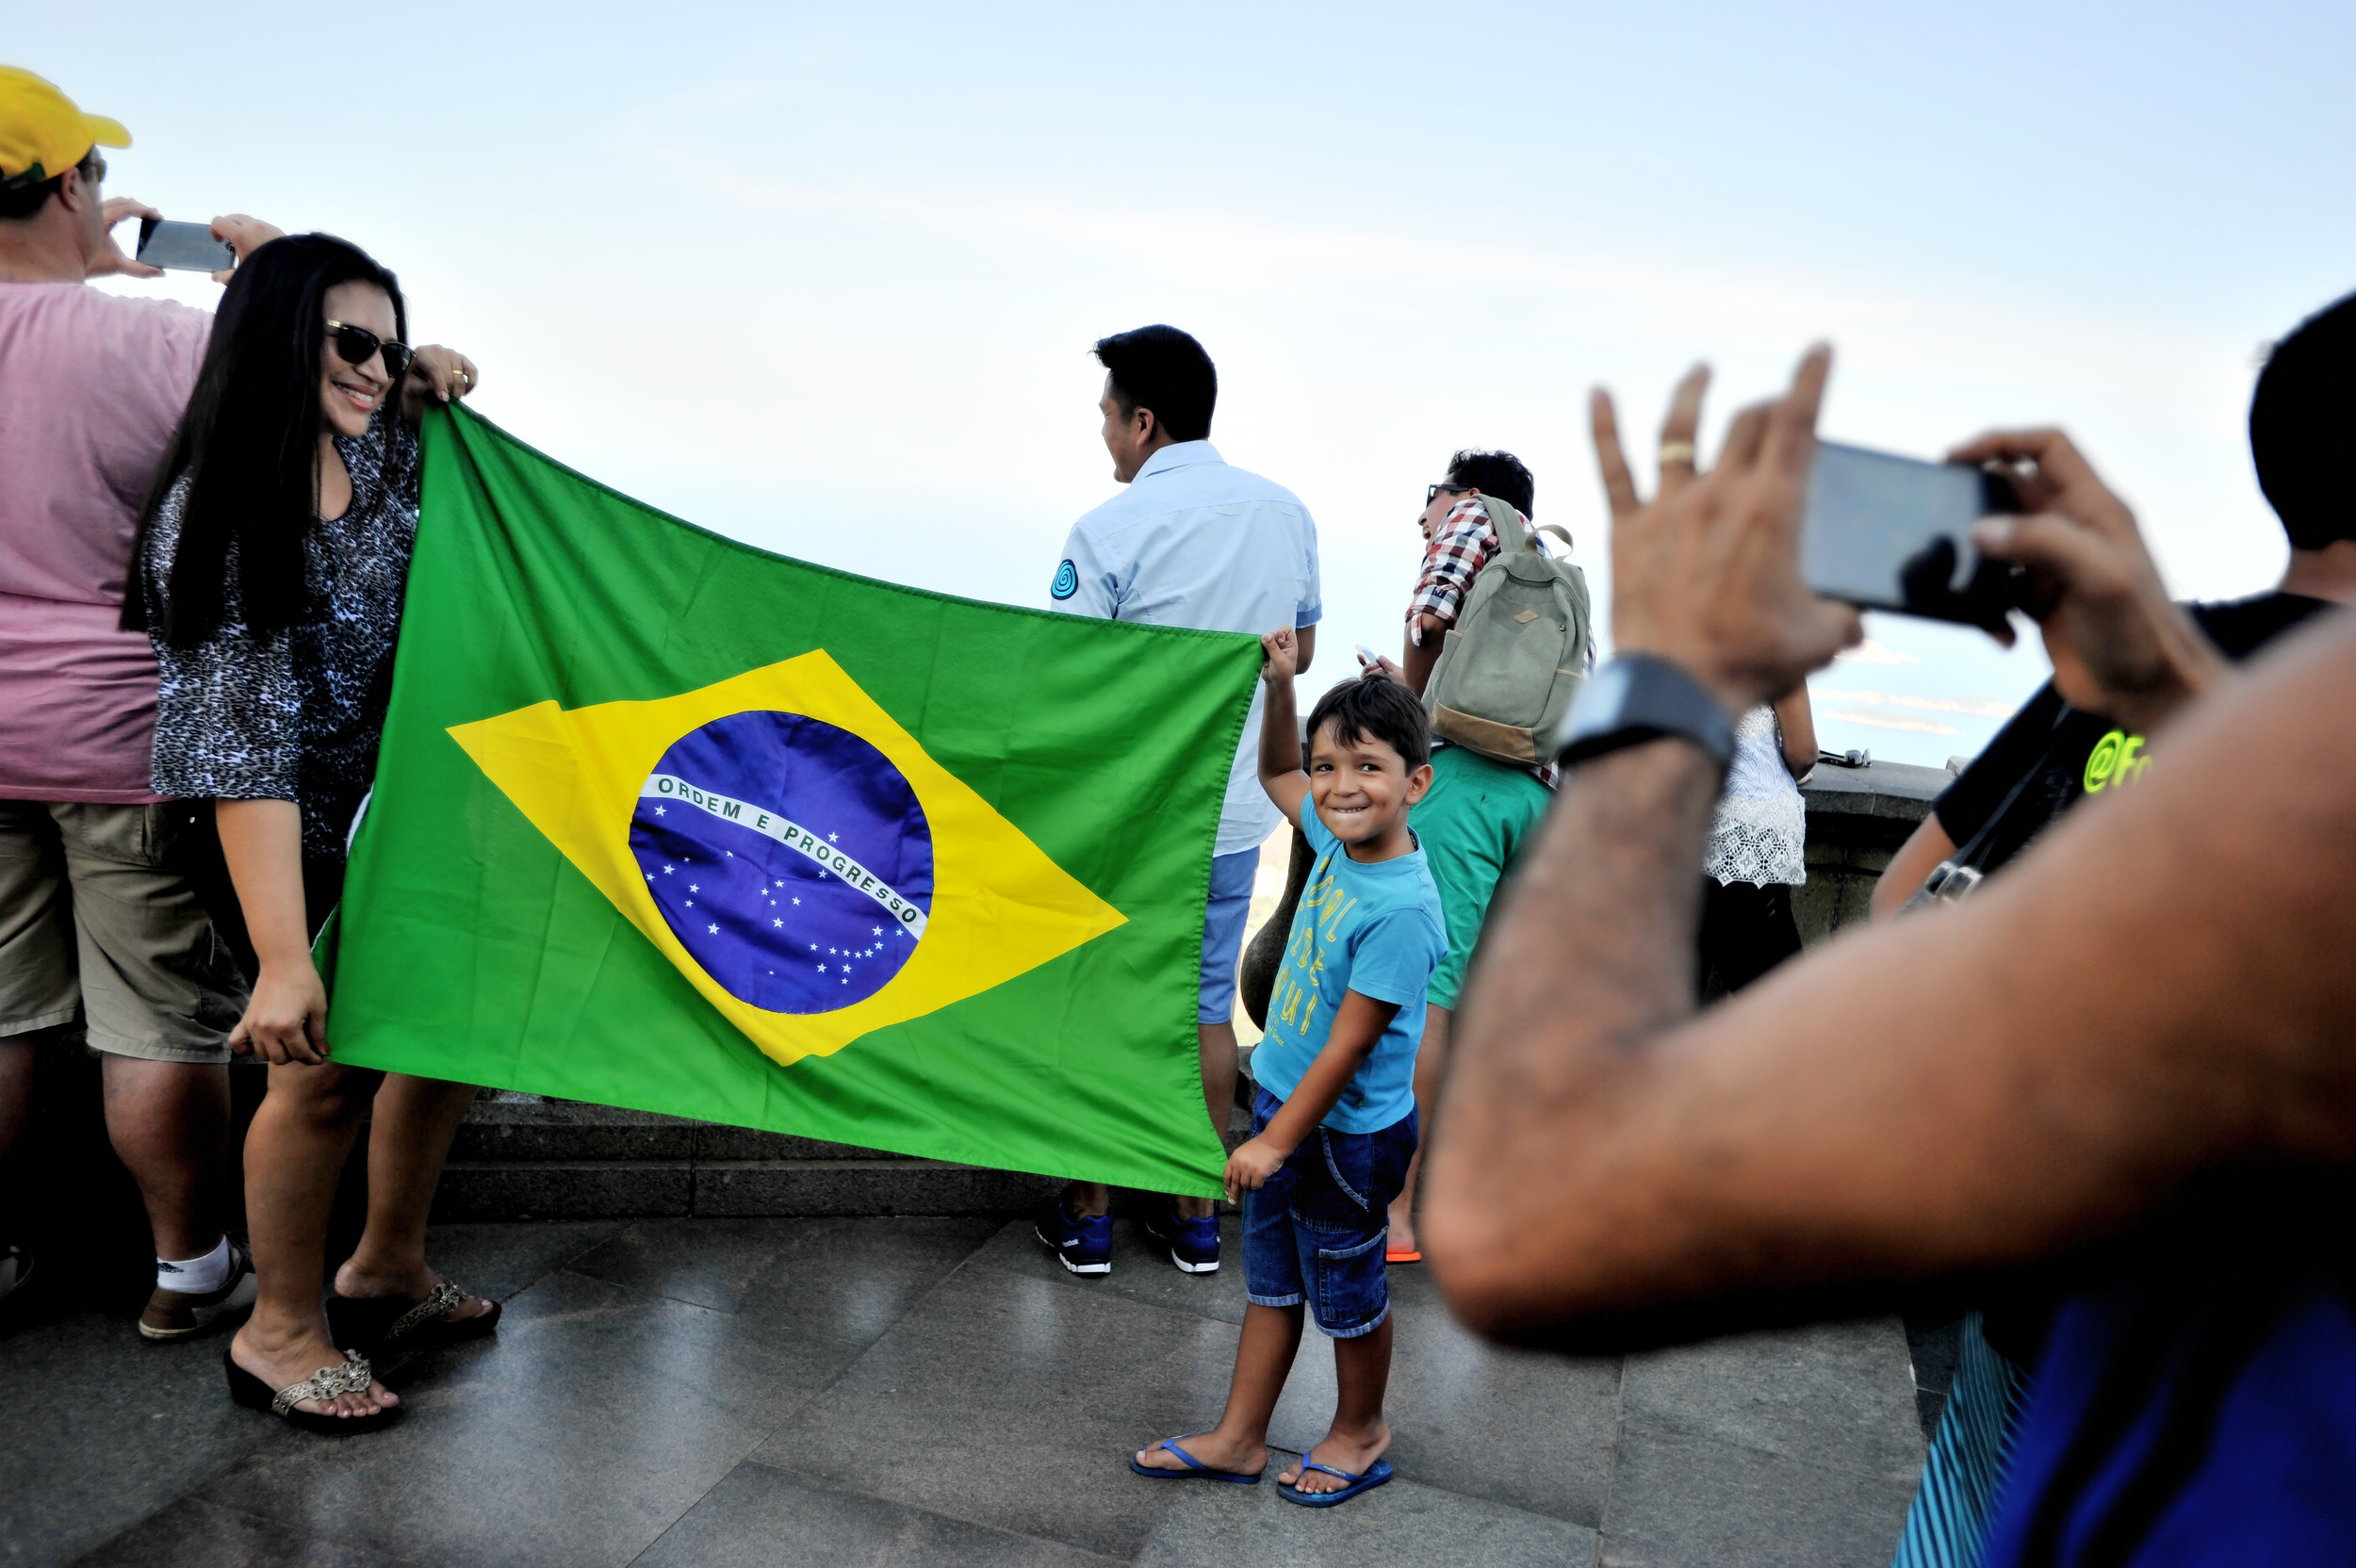 Denilza Rodrigues Dutua of Manaus and her son, Daniel, 5, pose with the Brazilian flag at the Statue of Christ the Redeemer in Rio de Janeiro, Brazil, on August 5, 2016. (Sarah Stier | Ball State at the Games)